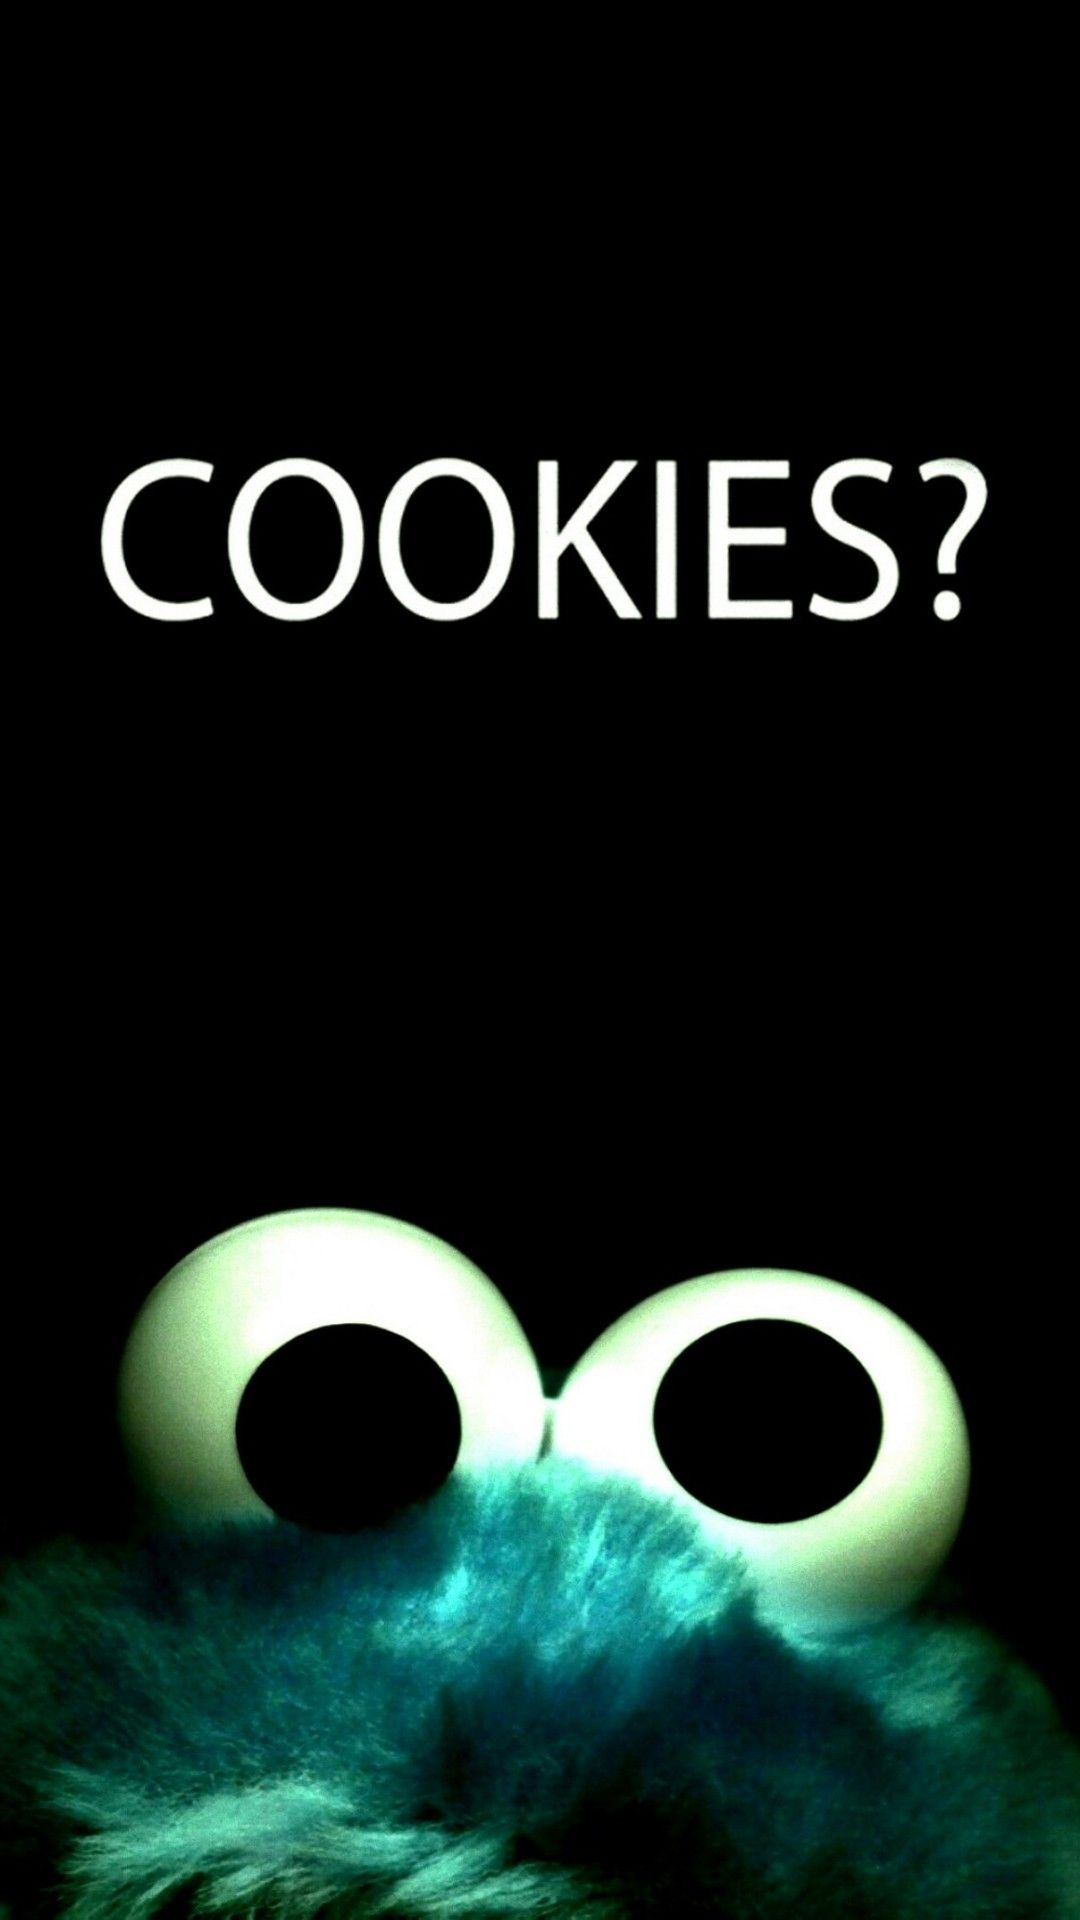 Cookies Cookie Monster 4k Hd Android And Iphone Wallpaper